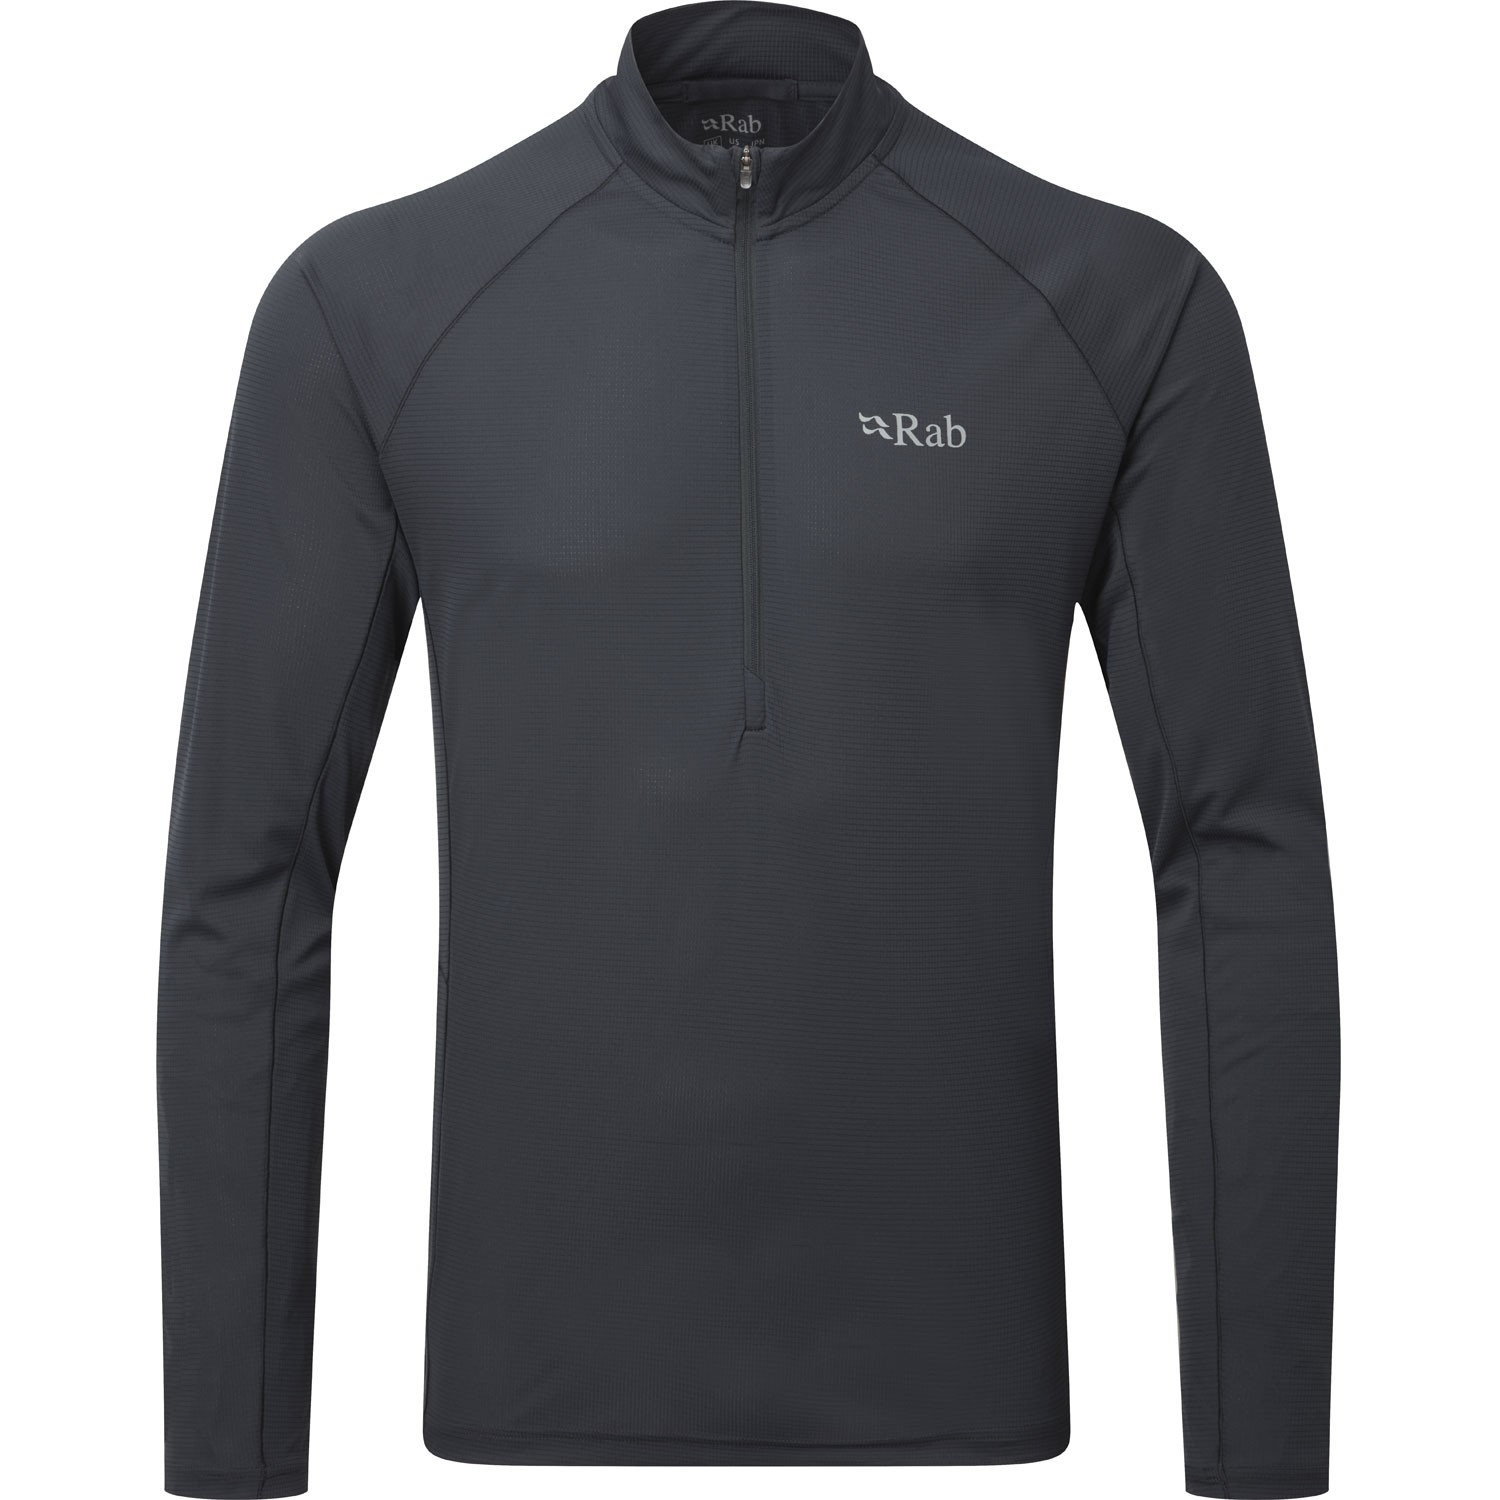 Rab Pulse Long Sleeve Zip Men's Baselayer - Ebony